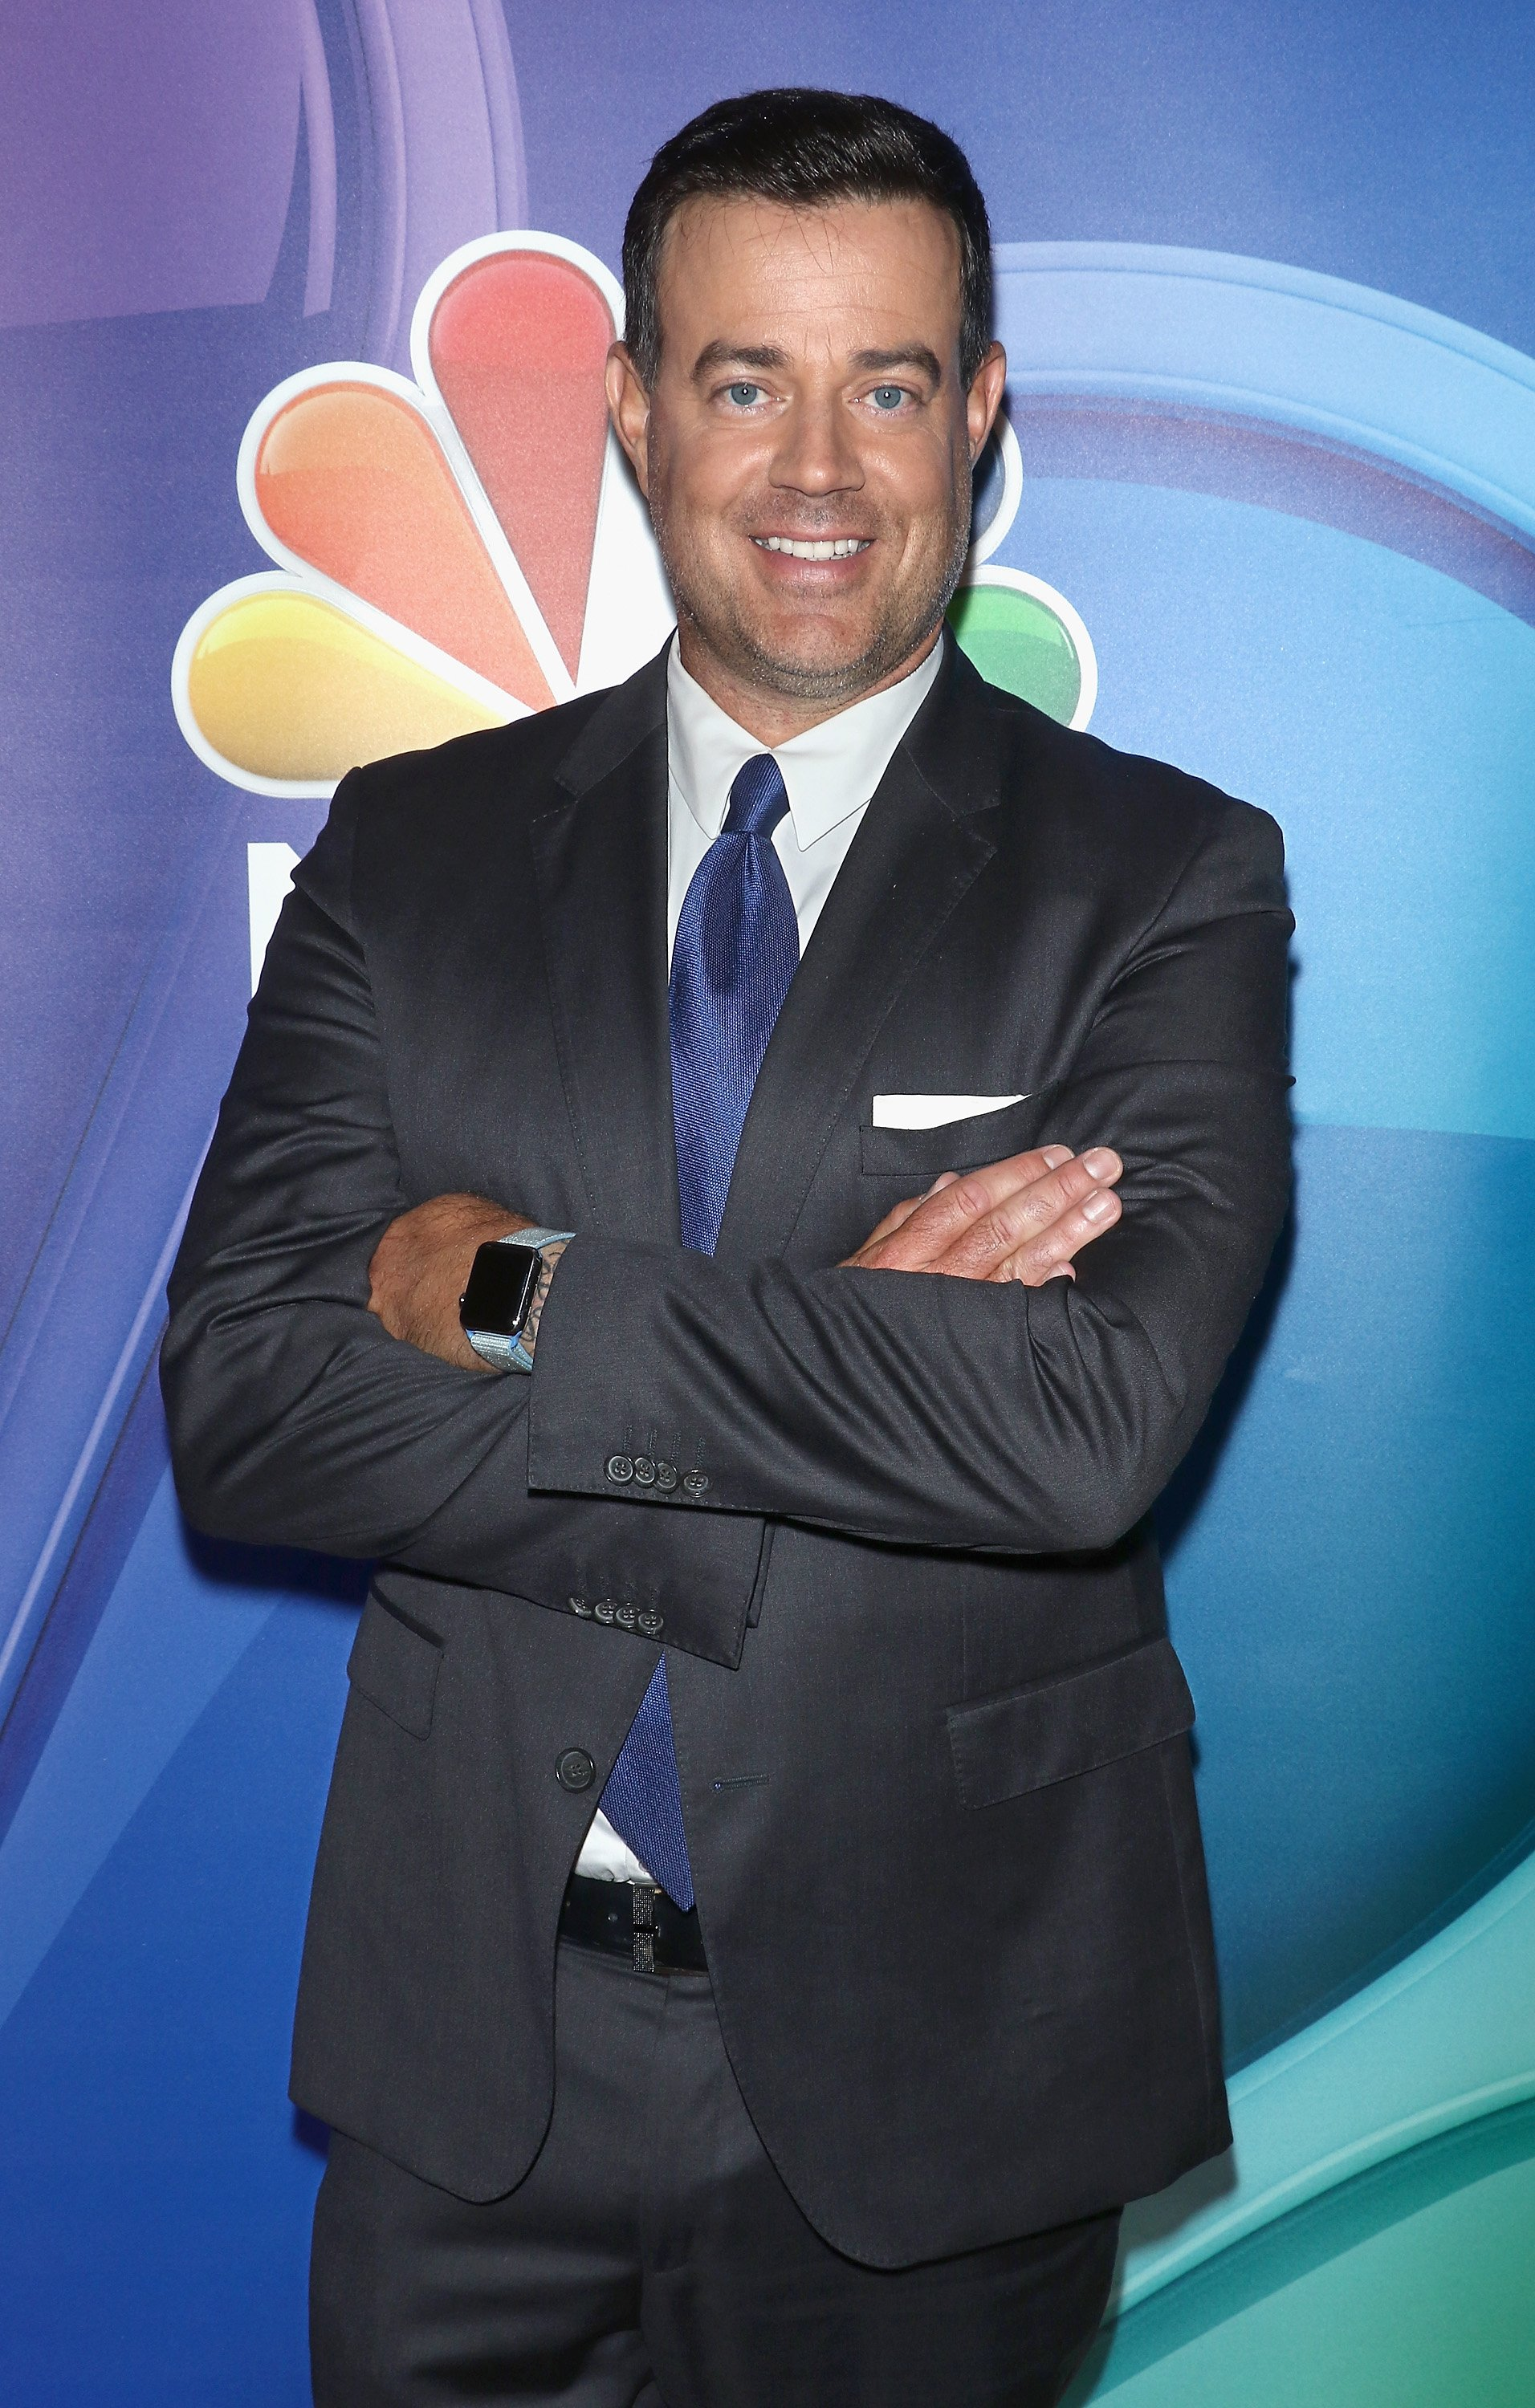 Carson Daly attends the NBC Fall New York Junket at Four Seasons Hotel New York on September 6, 2018 in New York City   Photo: Getty Images